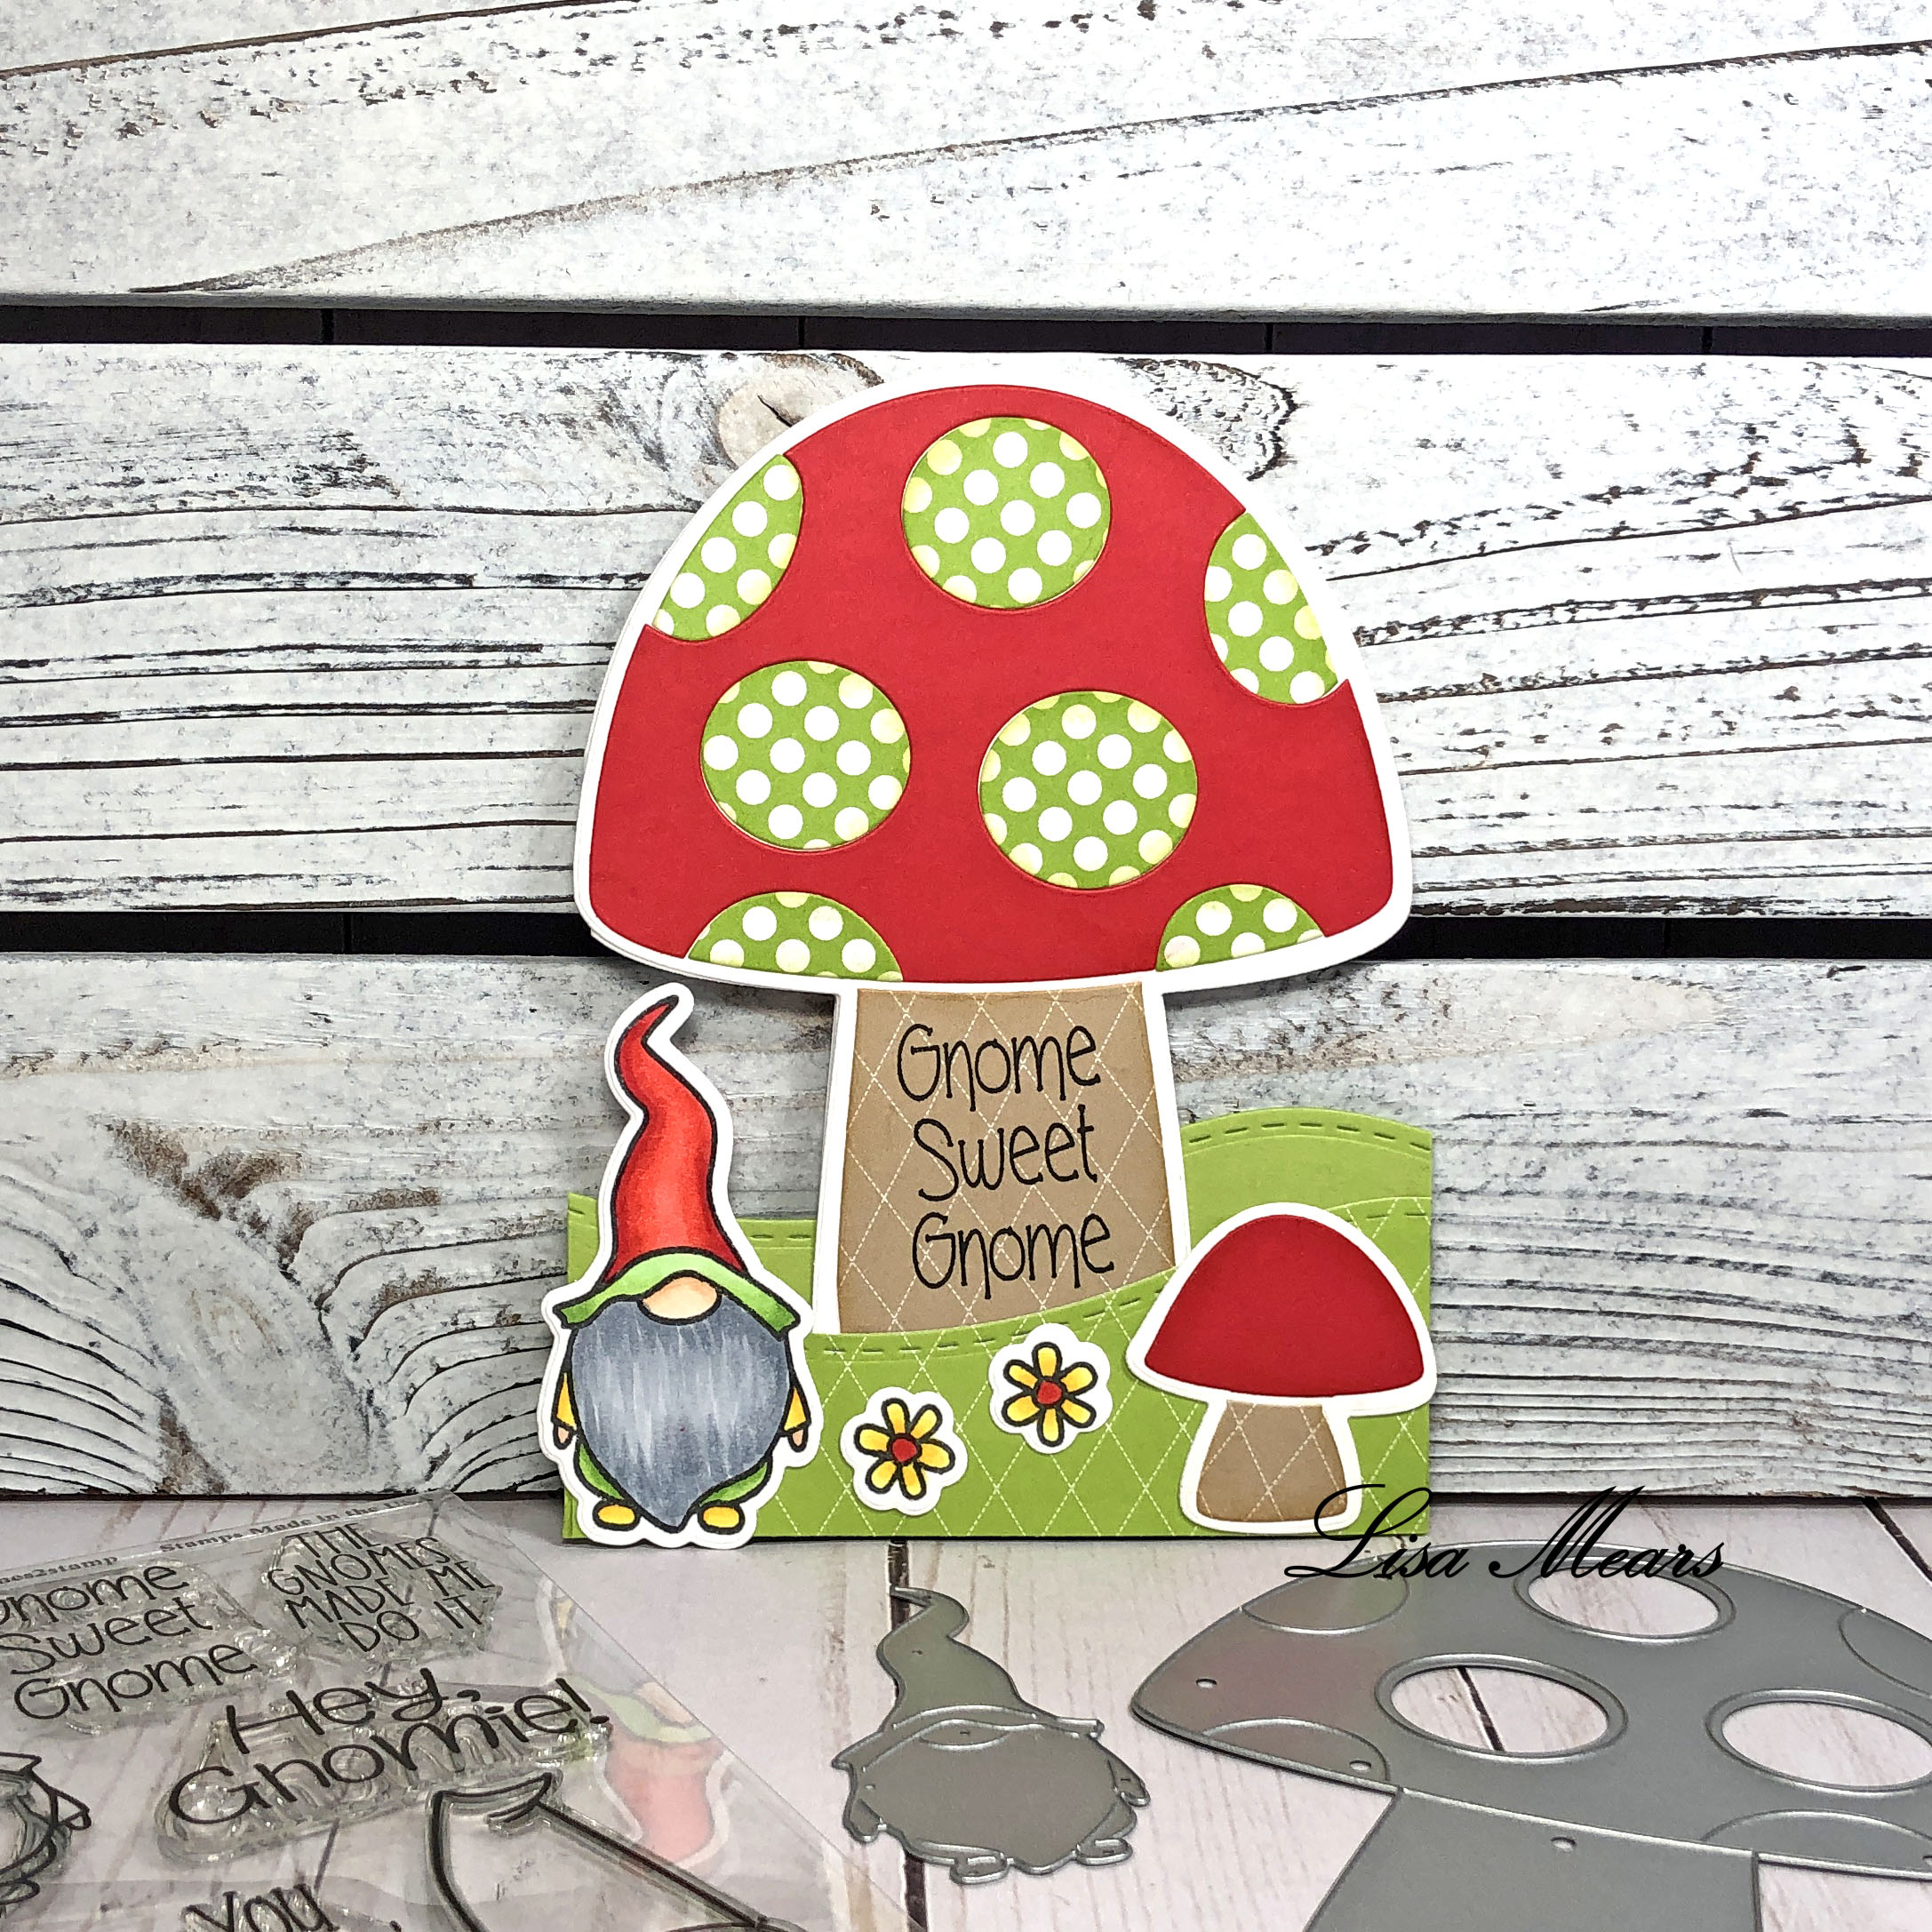 Mushroom Shaped Card with Gnome